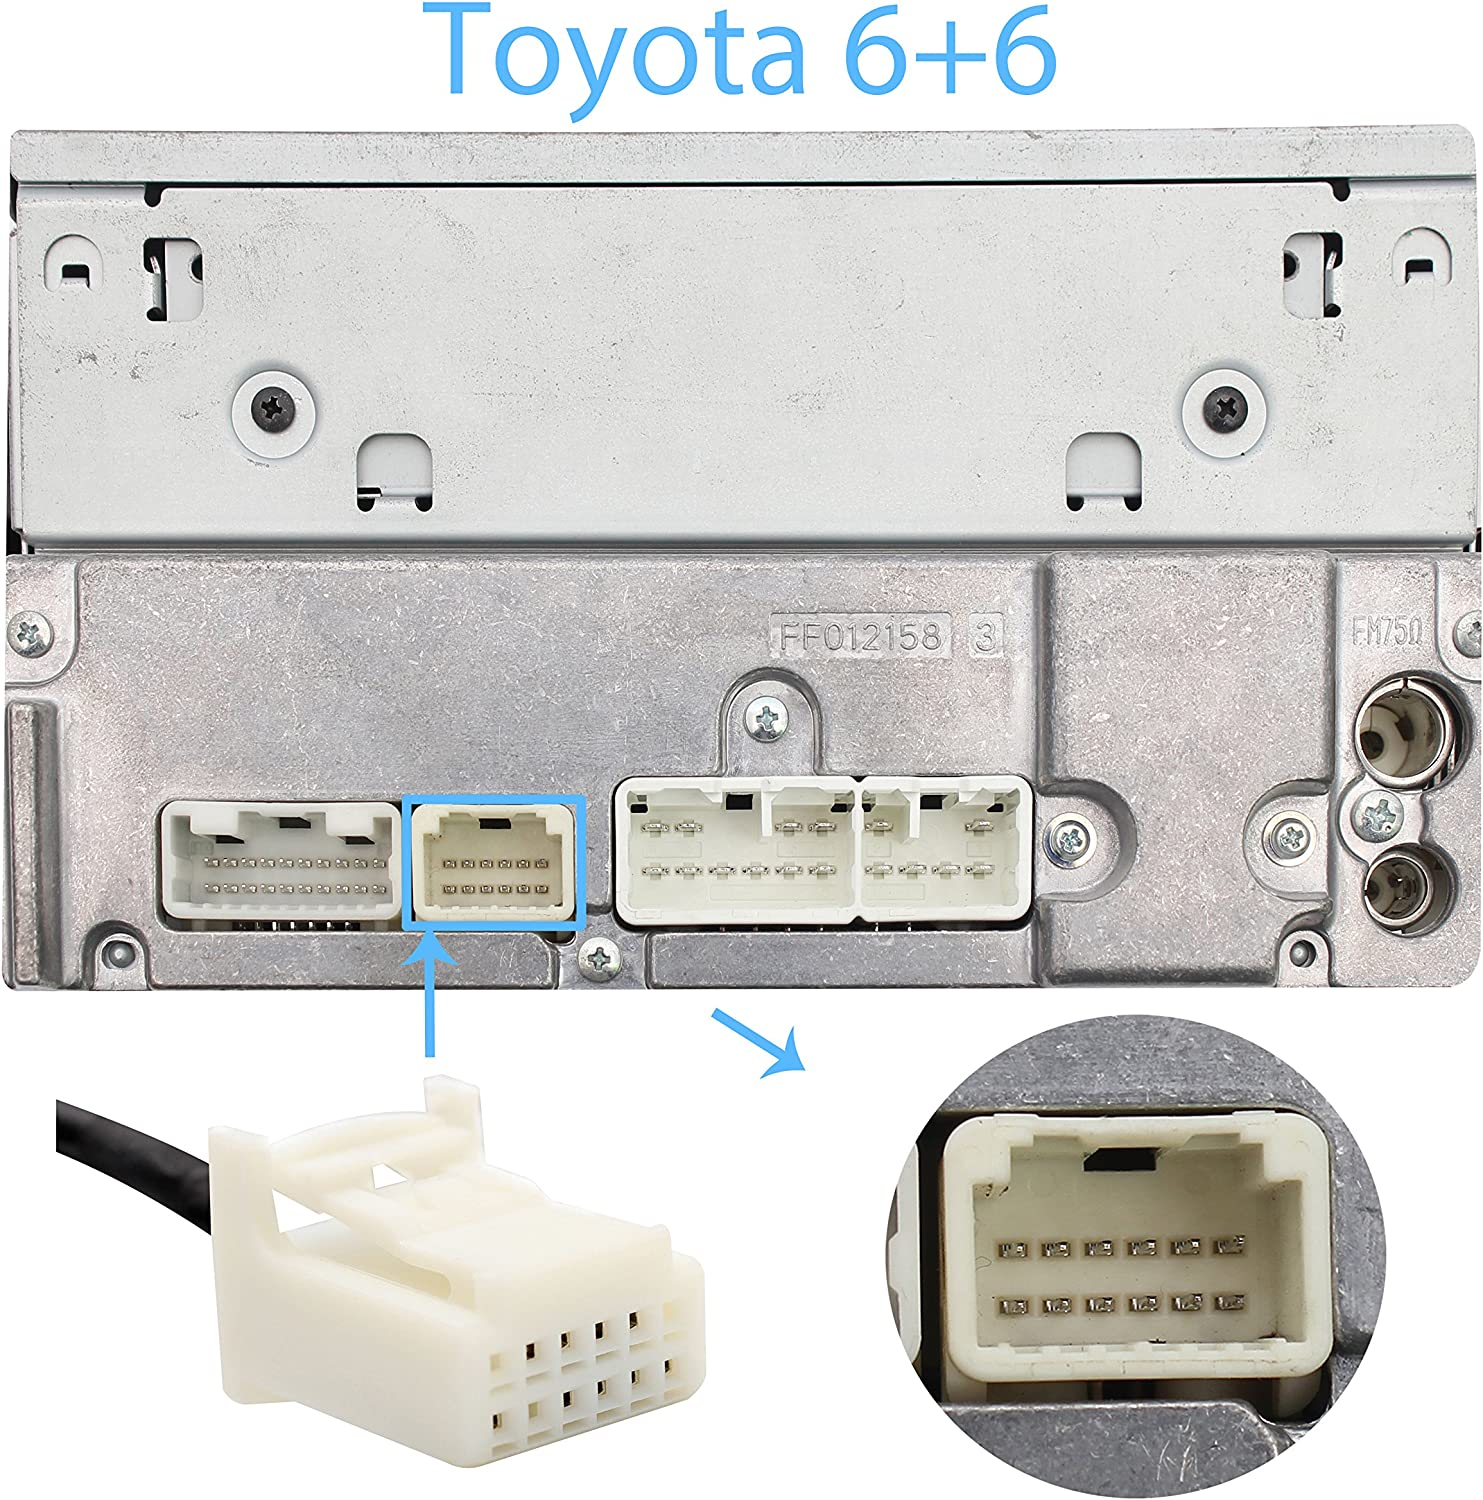 6+6 Wyness Car MP3 USB//AUX 3.5mm Stereo Wireless Music Receiver Wireless Hands Free Auto Bluetooth Adapter Fit for Toyota Pin Camry Tacoma Corolla Tundra RAV4 Lexus RX GS is